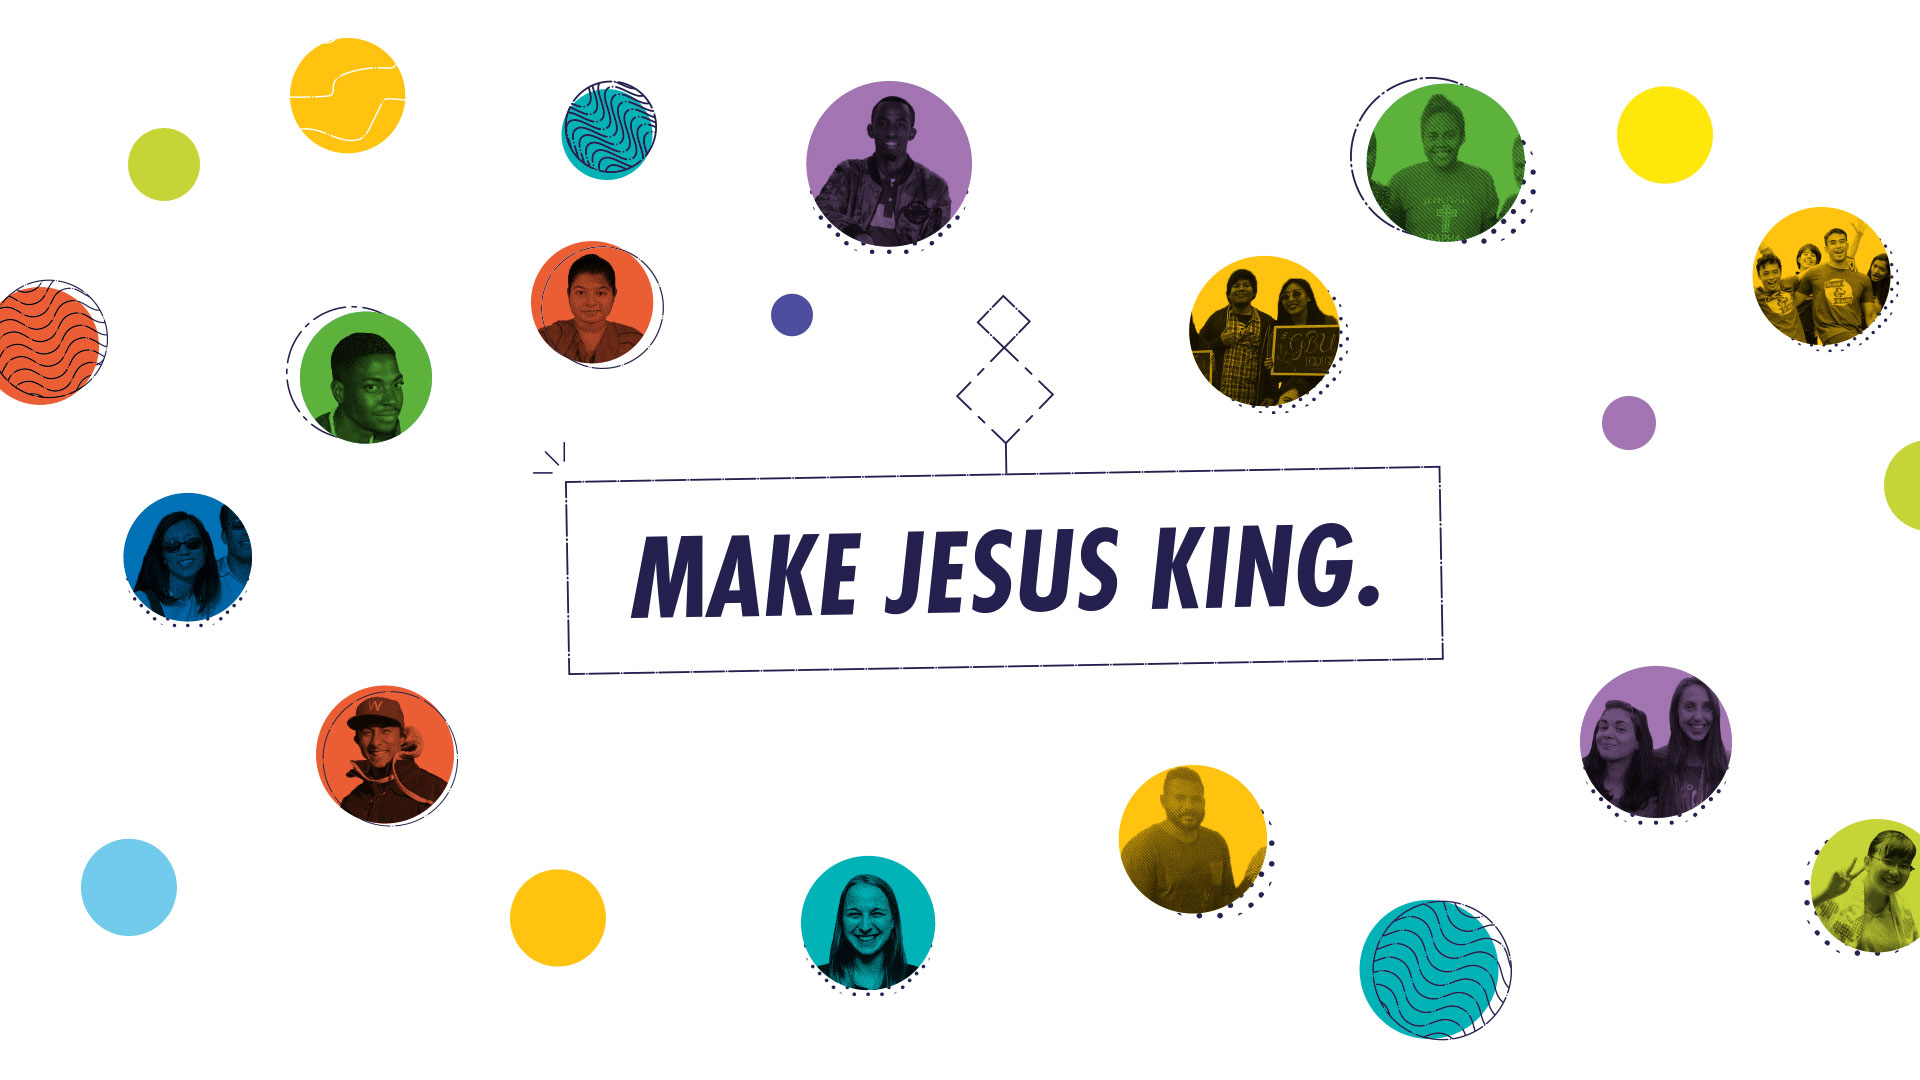 Make Jesus King